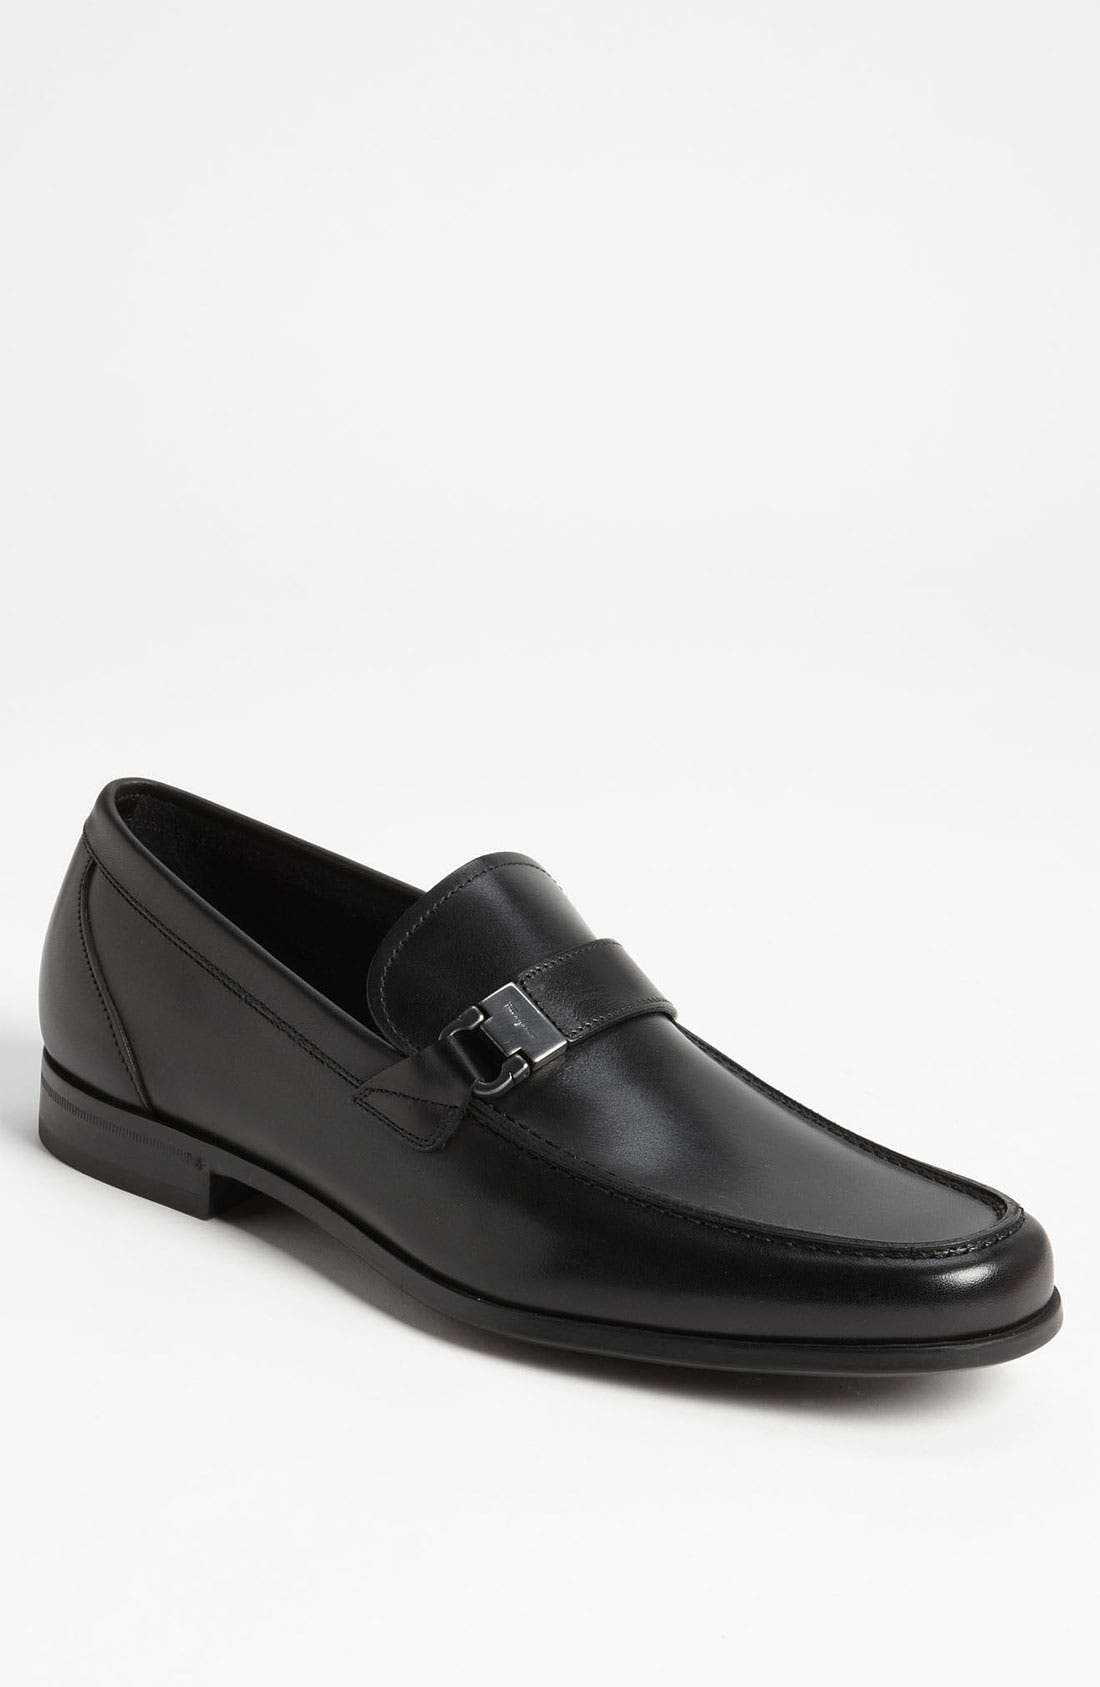 Alternate Image 1 Selected - Salvatore Ferragamo 'Tazio' Loafer (Men)